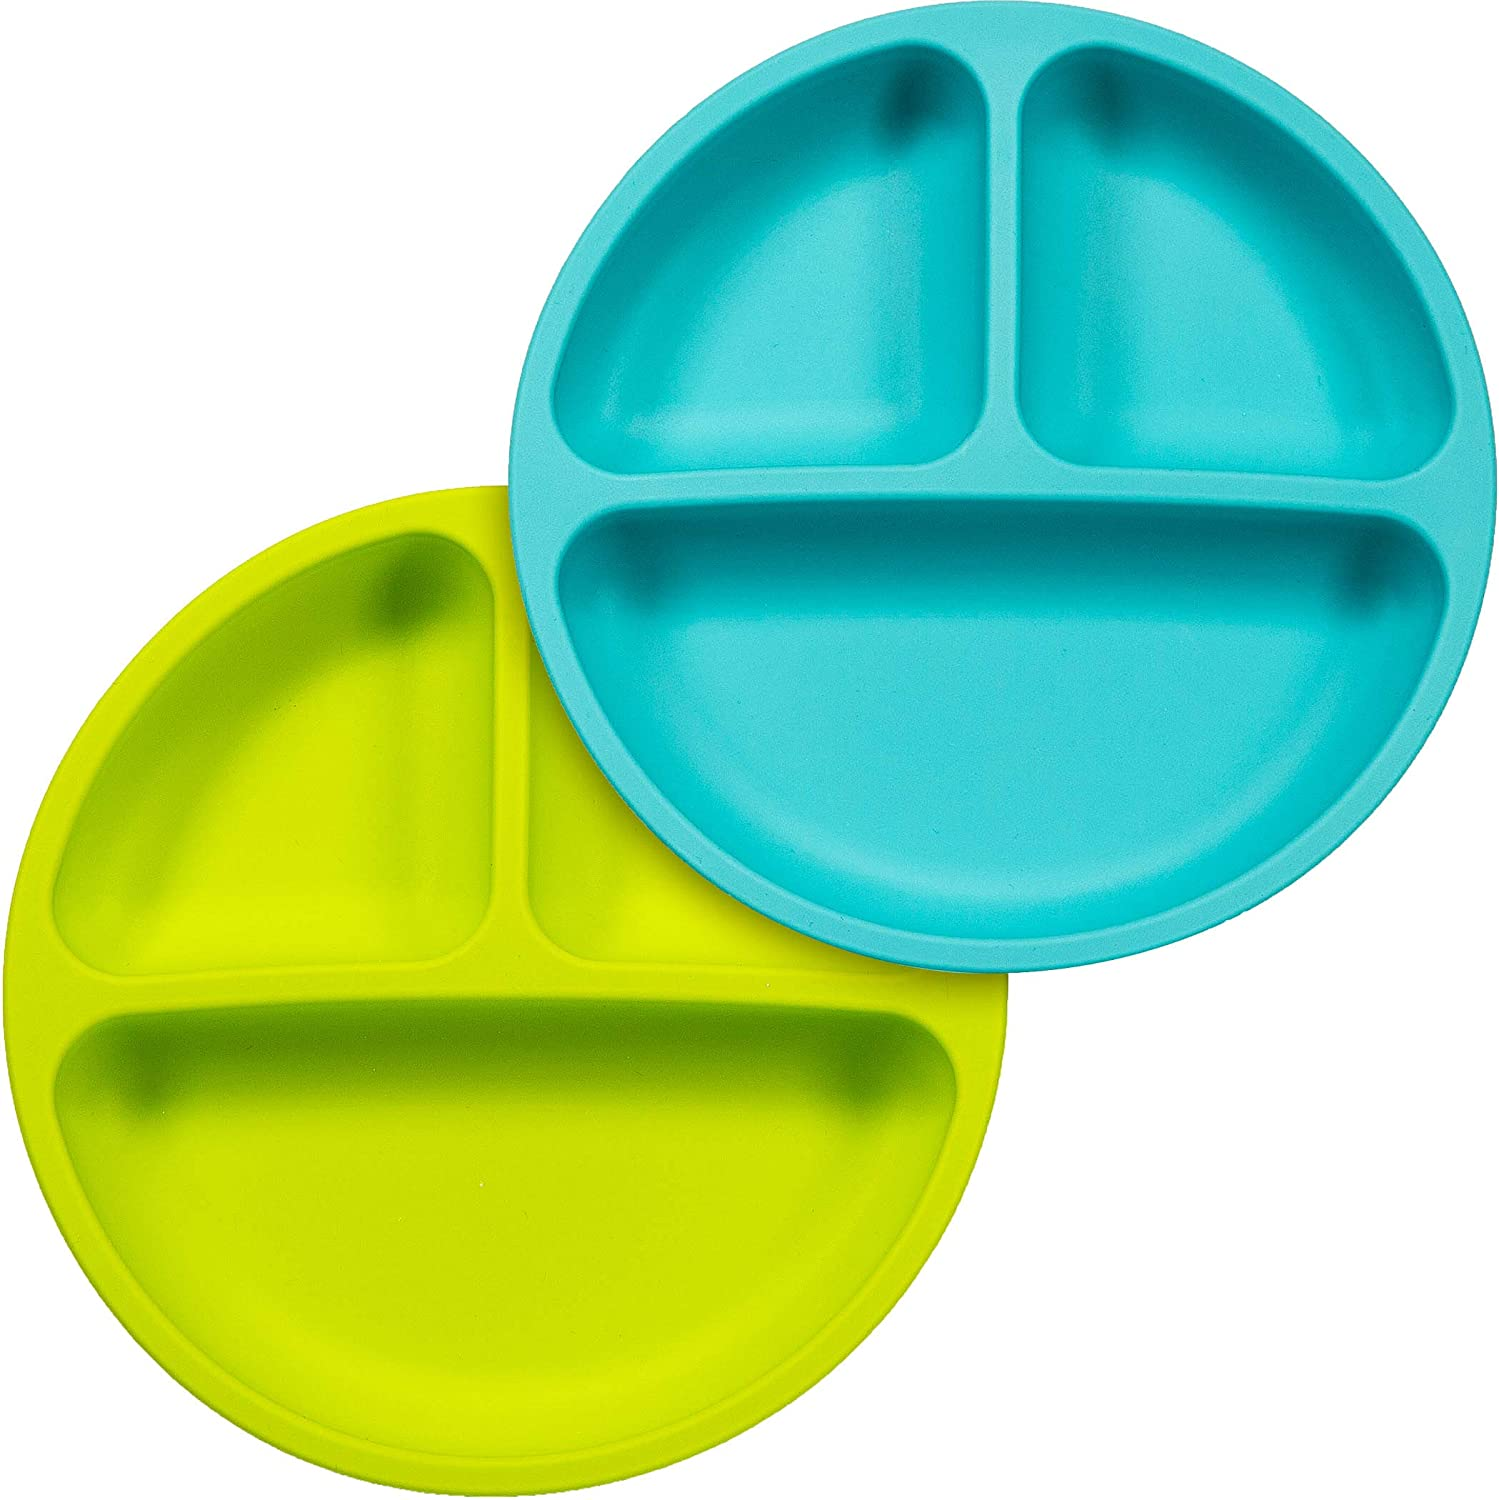 Sperric Silicone Divided Plates Fresno Mall Unbreakable - Ranking TOP5 Non-Slip